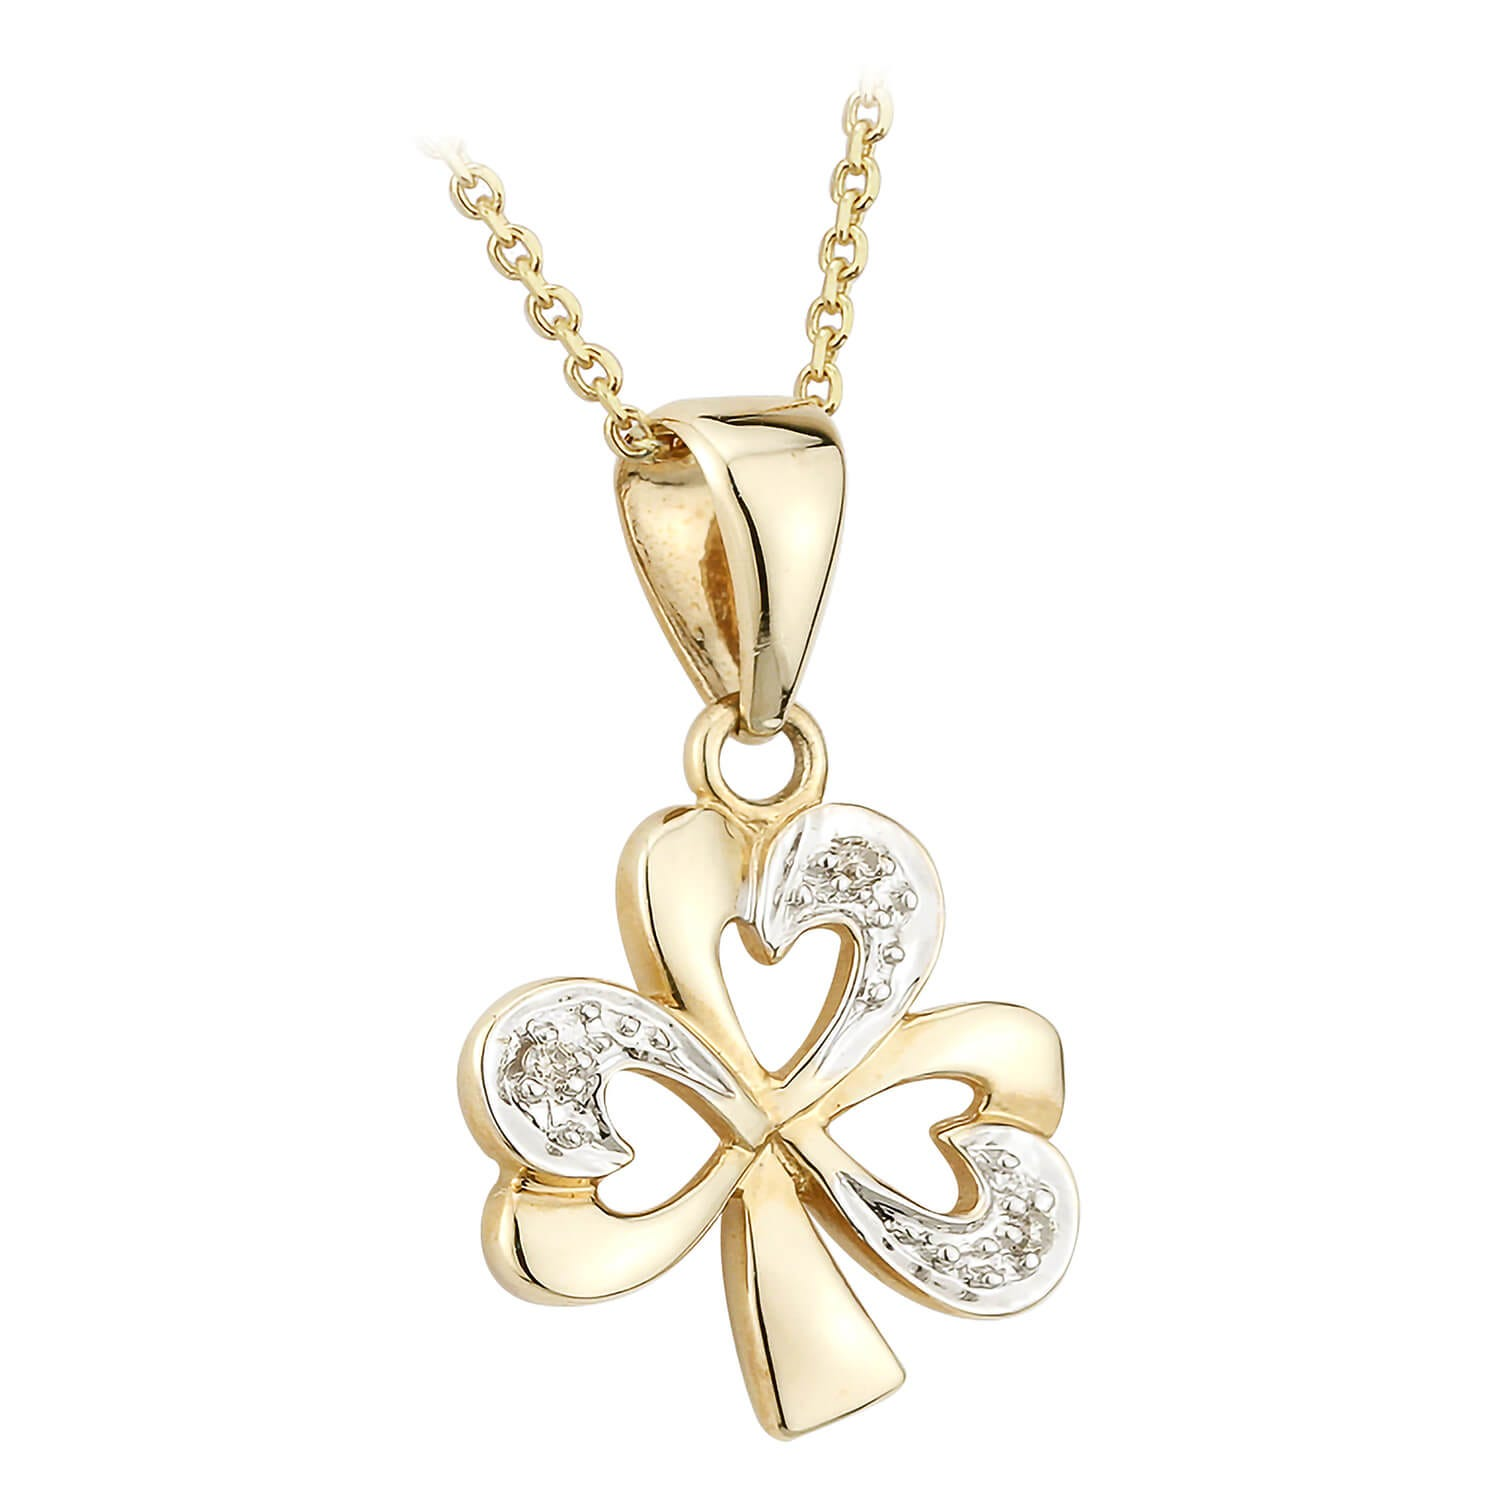 14ct Yellow Gold and Diamond Shamrock Pendant.